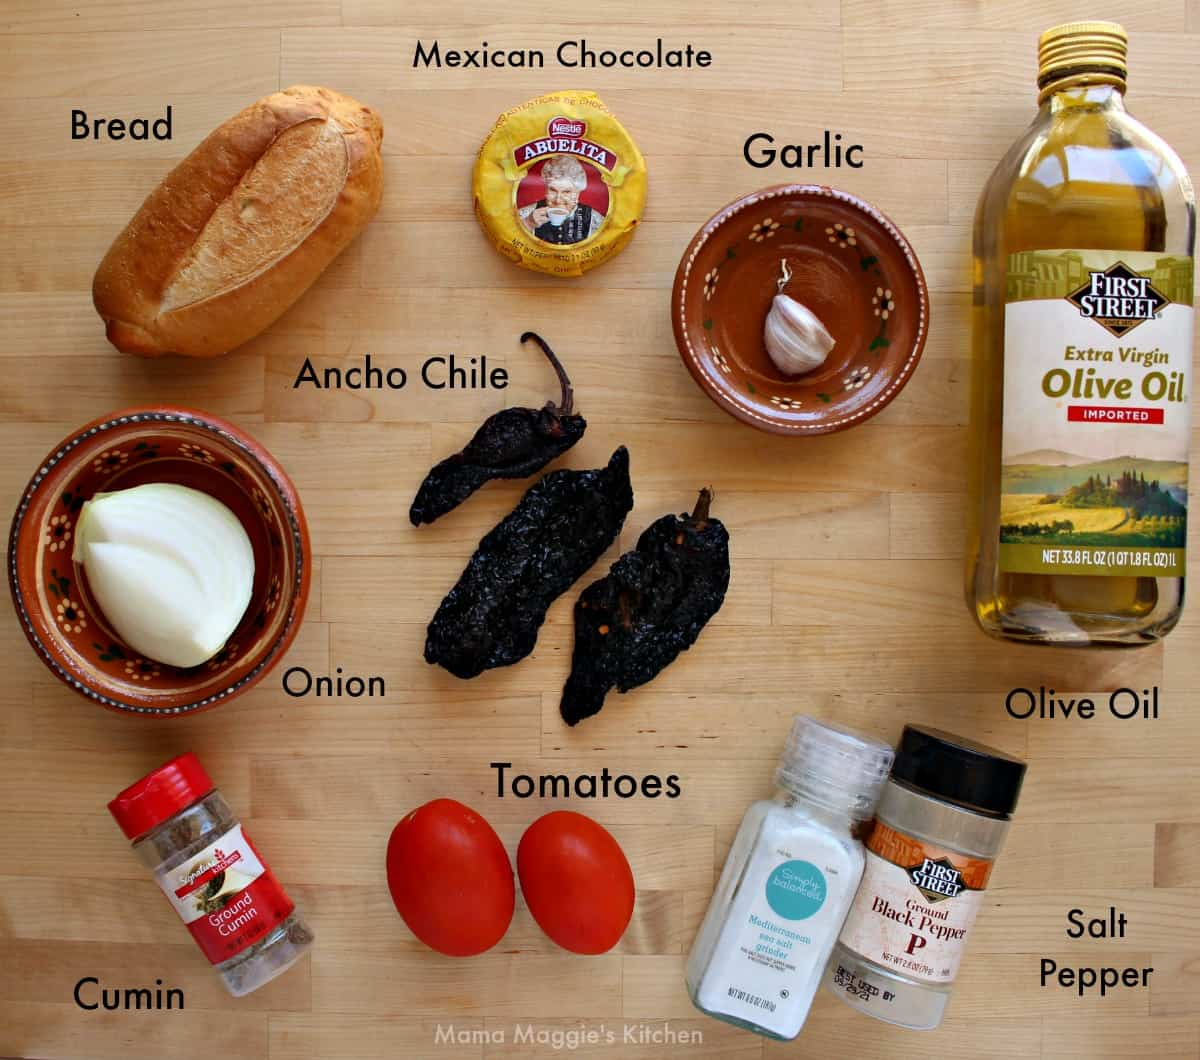 The ingredients necessary to make mole on a wooden surface.